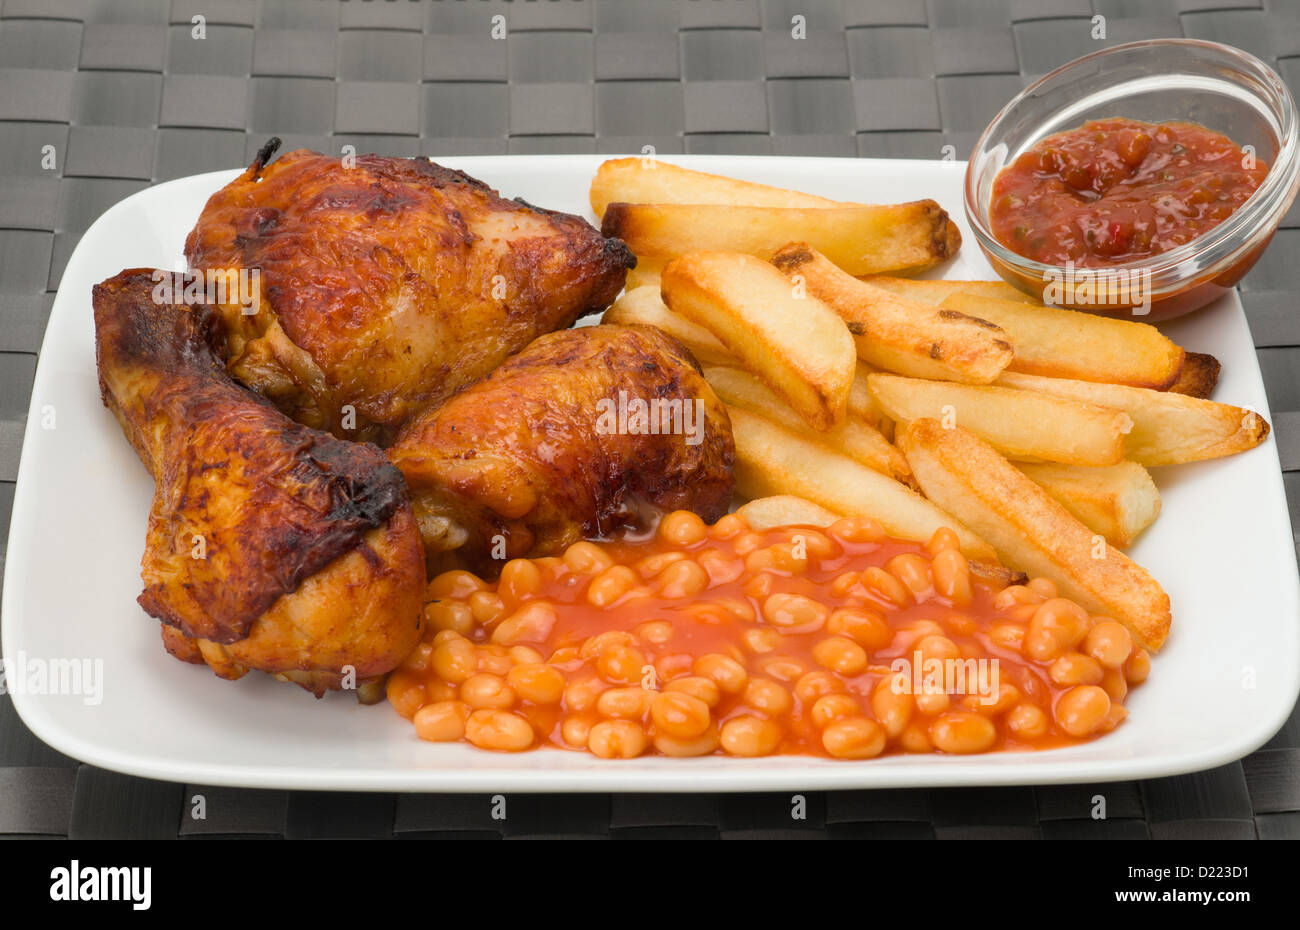 Barbecue chicken with French fries and baked beans - Stock Image